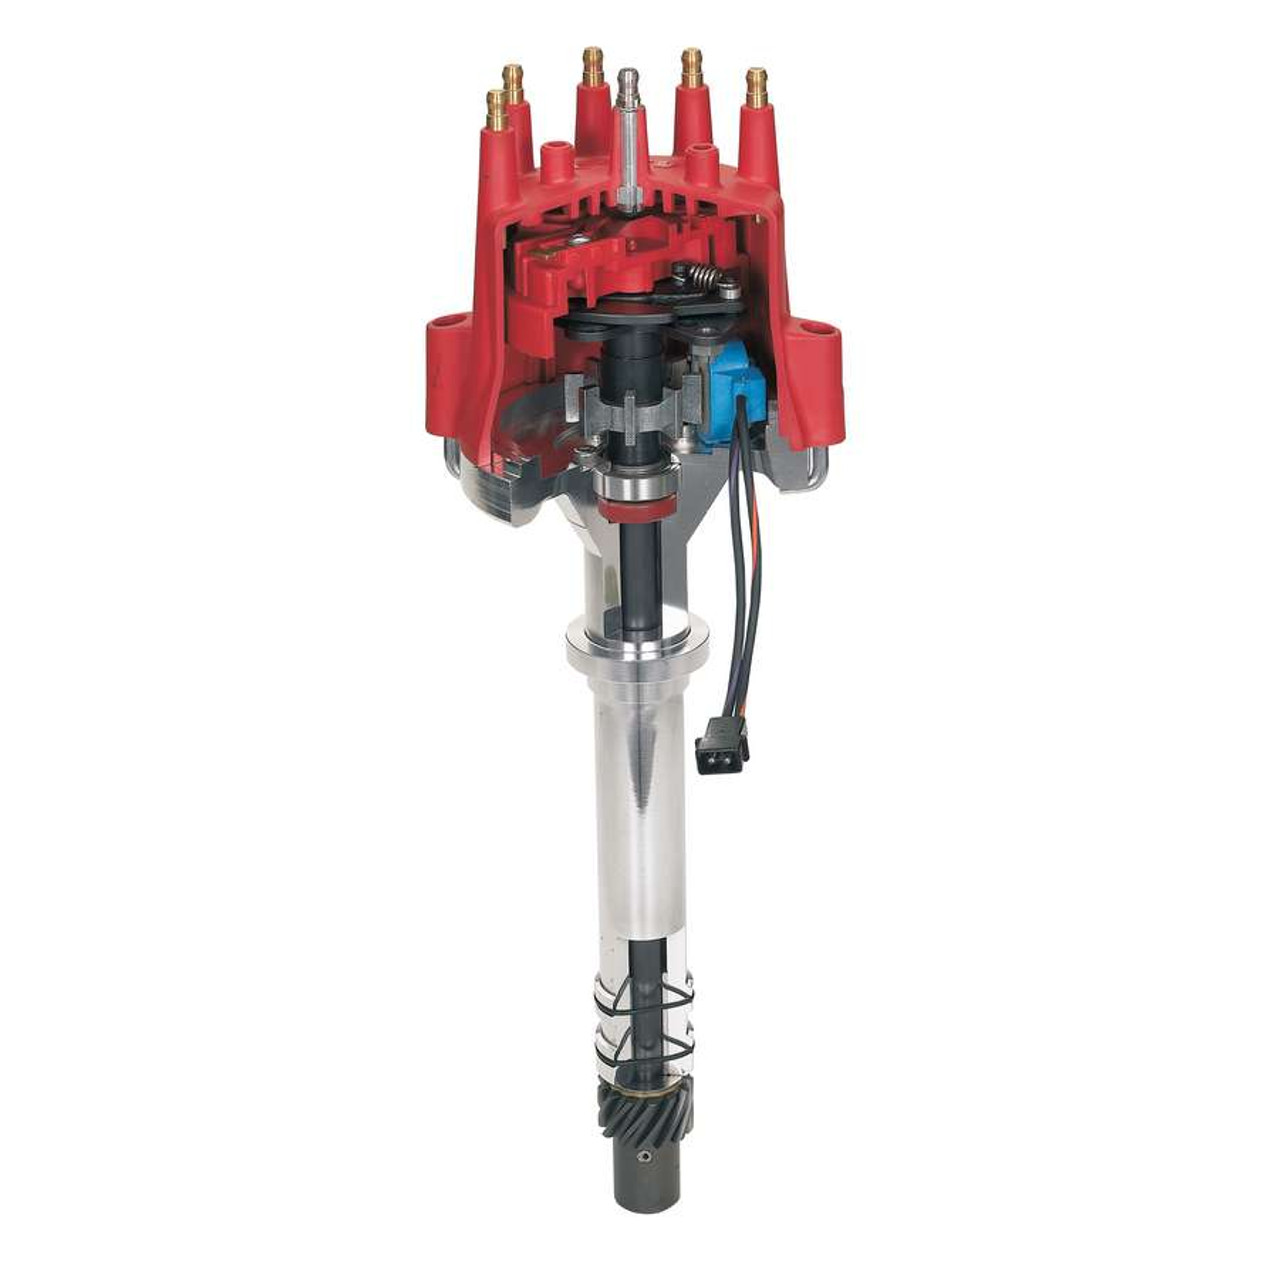 MSD Ignition Pro-Billet Distributor SBC BBC Chevy 85551 FREE SHIPPING Distributors, Pro-Billet, Magnetic Trigger, Mechanical Advance, Chevy, Big Block, Small Block, Requires the use of a separate ignition box such as an MSD 6, 7, 8, or 10 Series ignition, Each